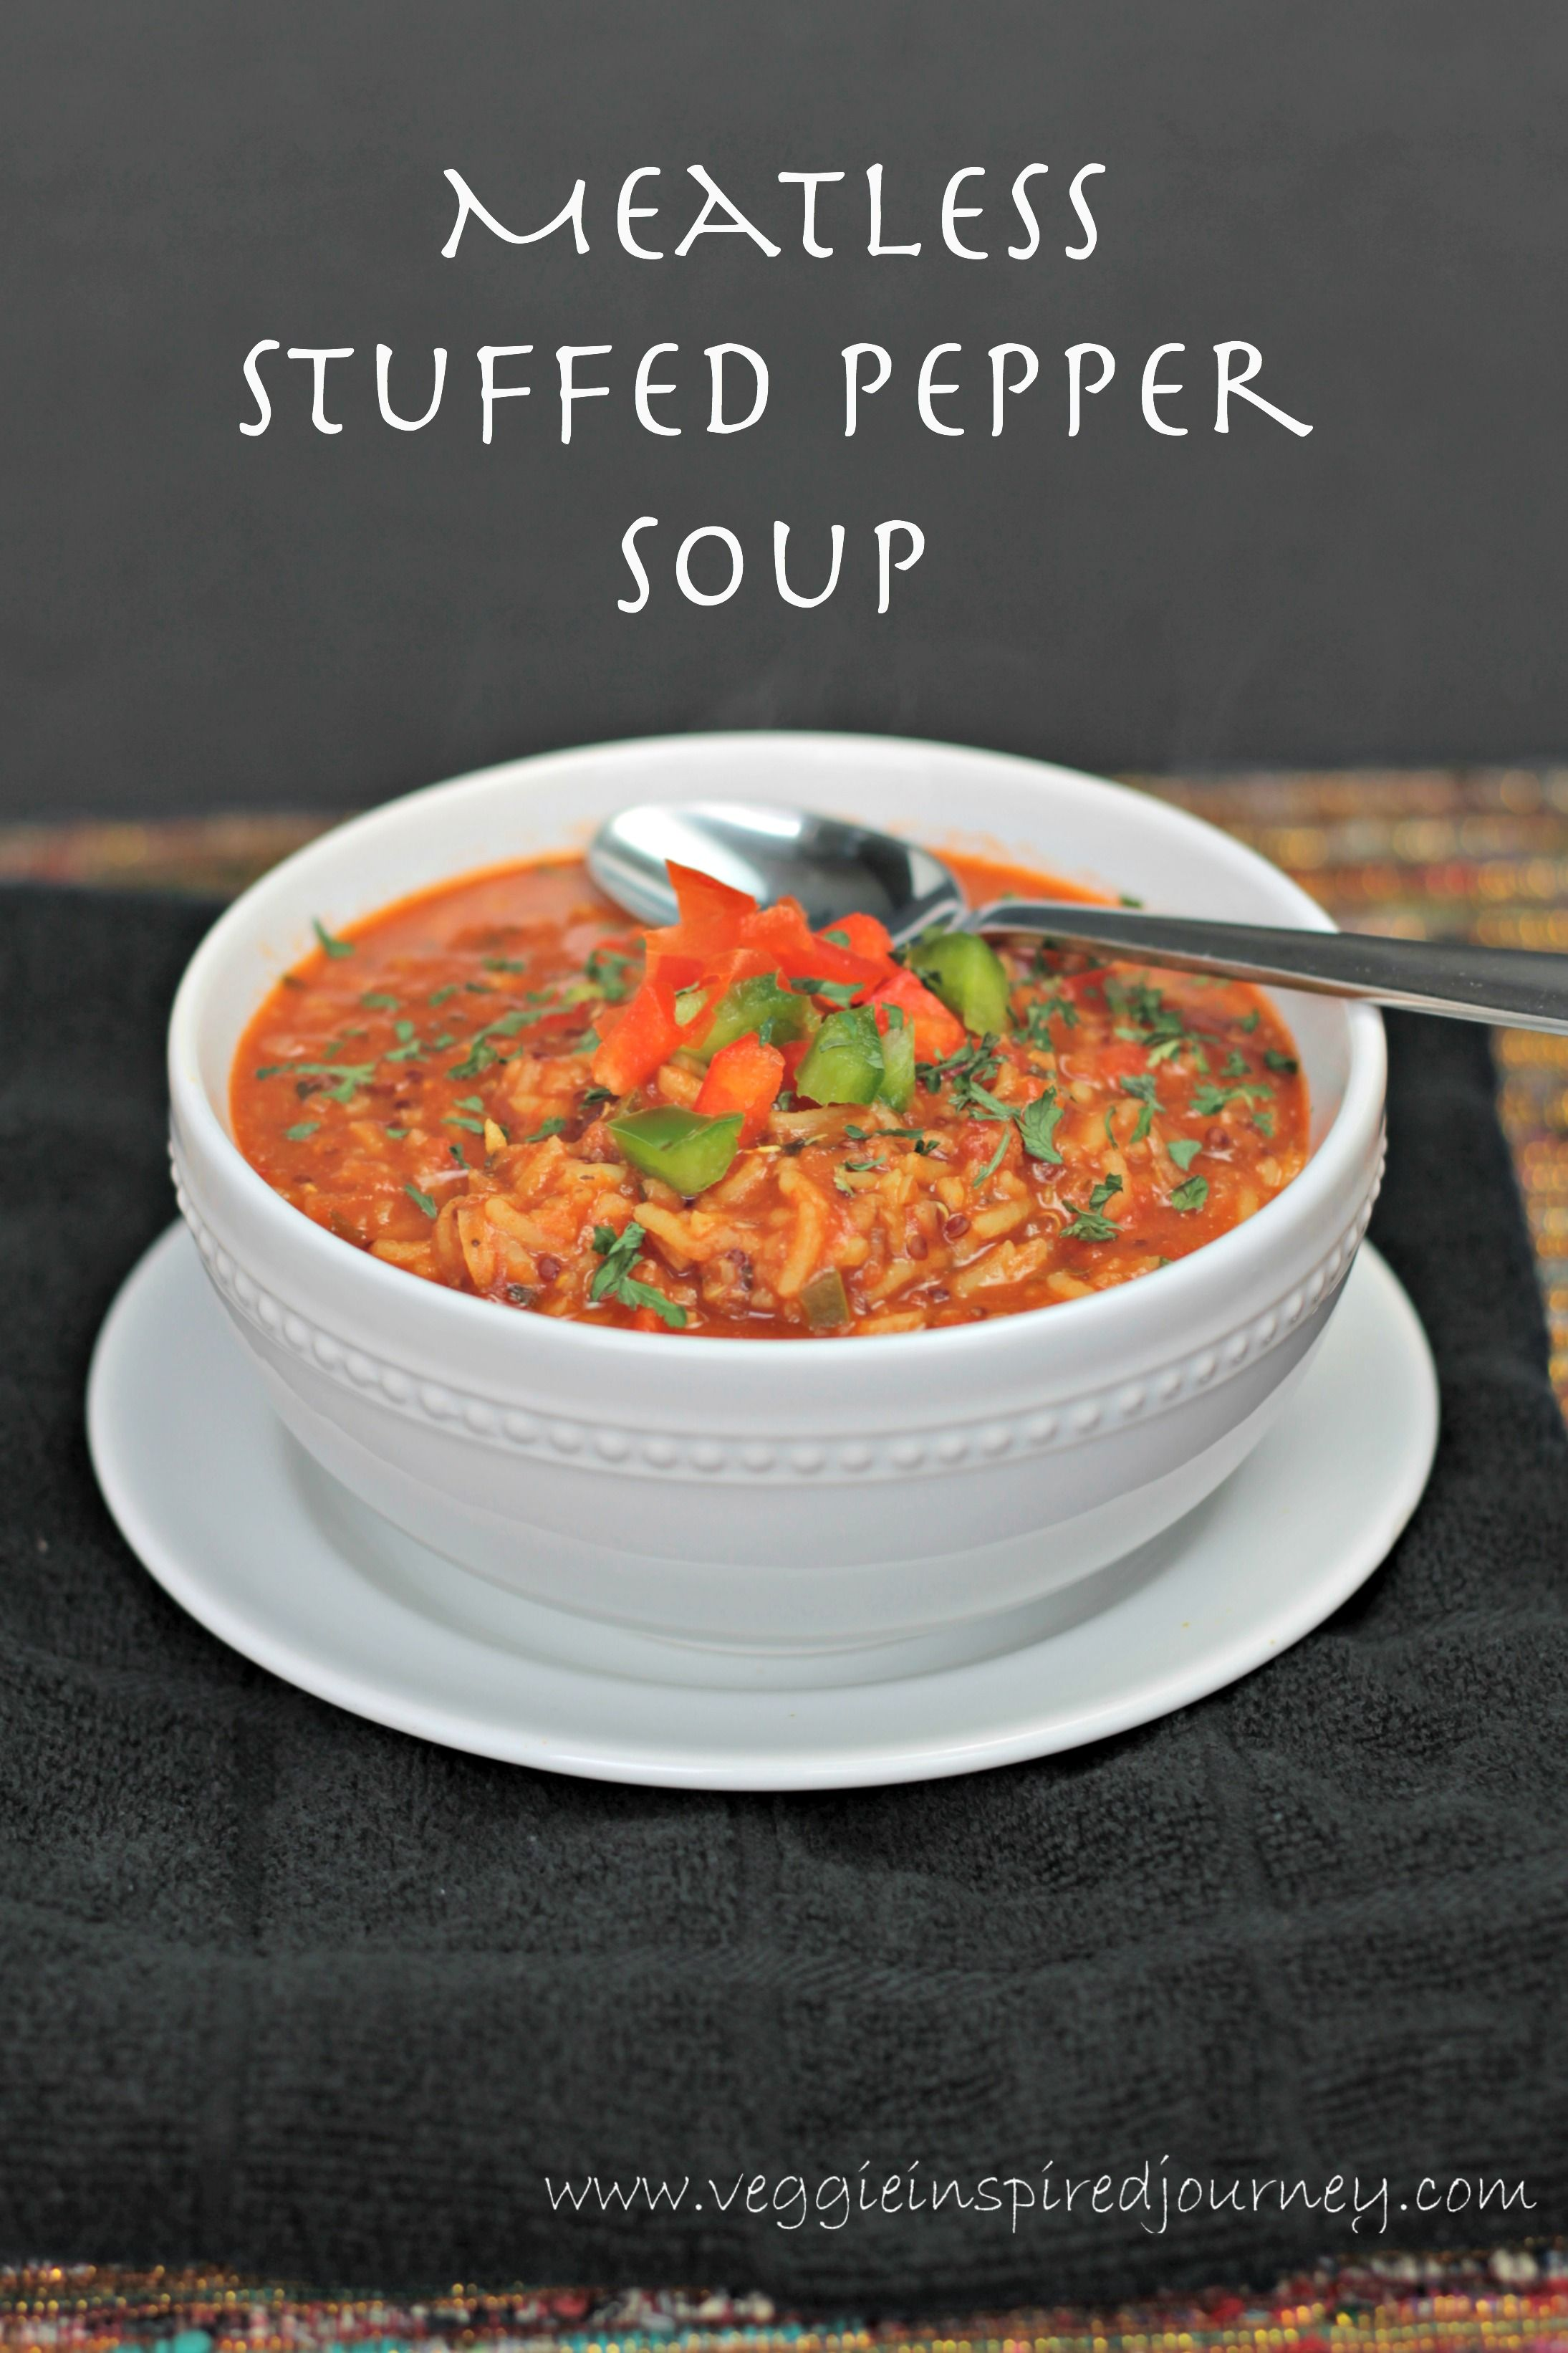 Meatless Stuffed Pepper Soup Recipe Stuffed Peppers Stuffed Pepper Soup Whole Food Recipes